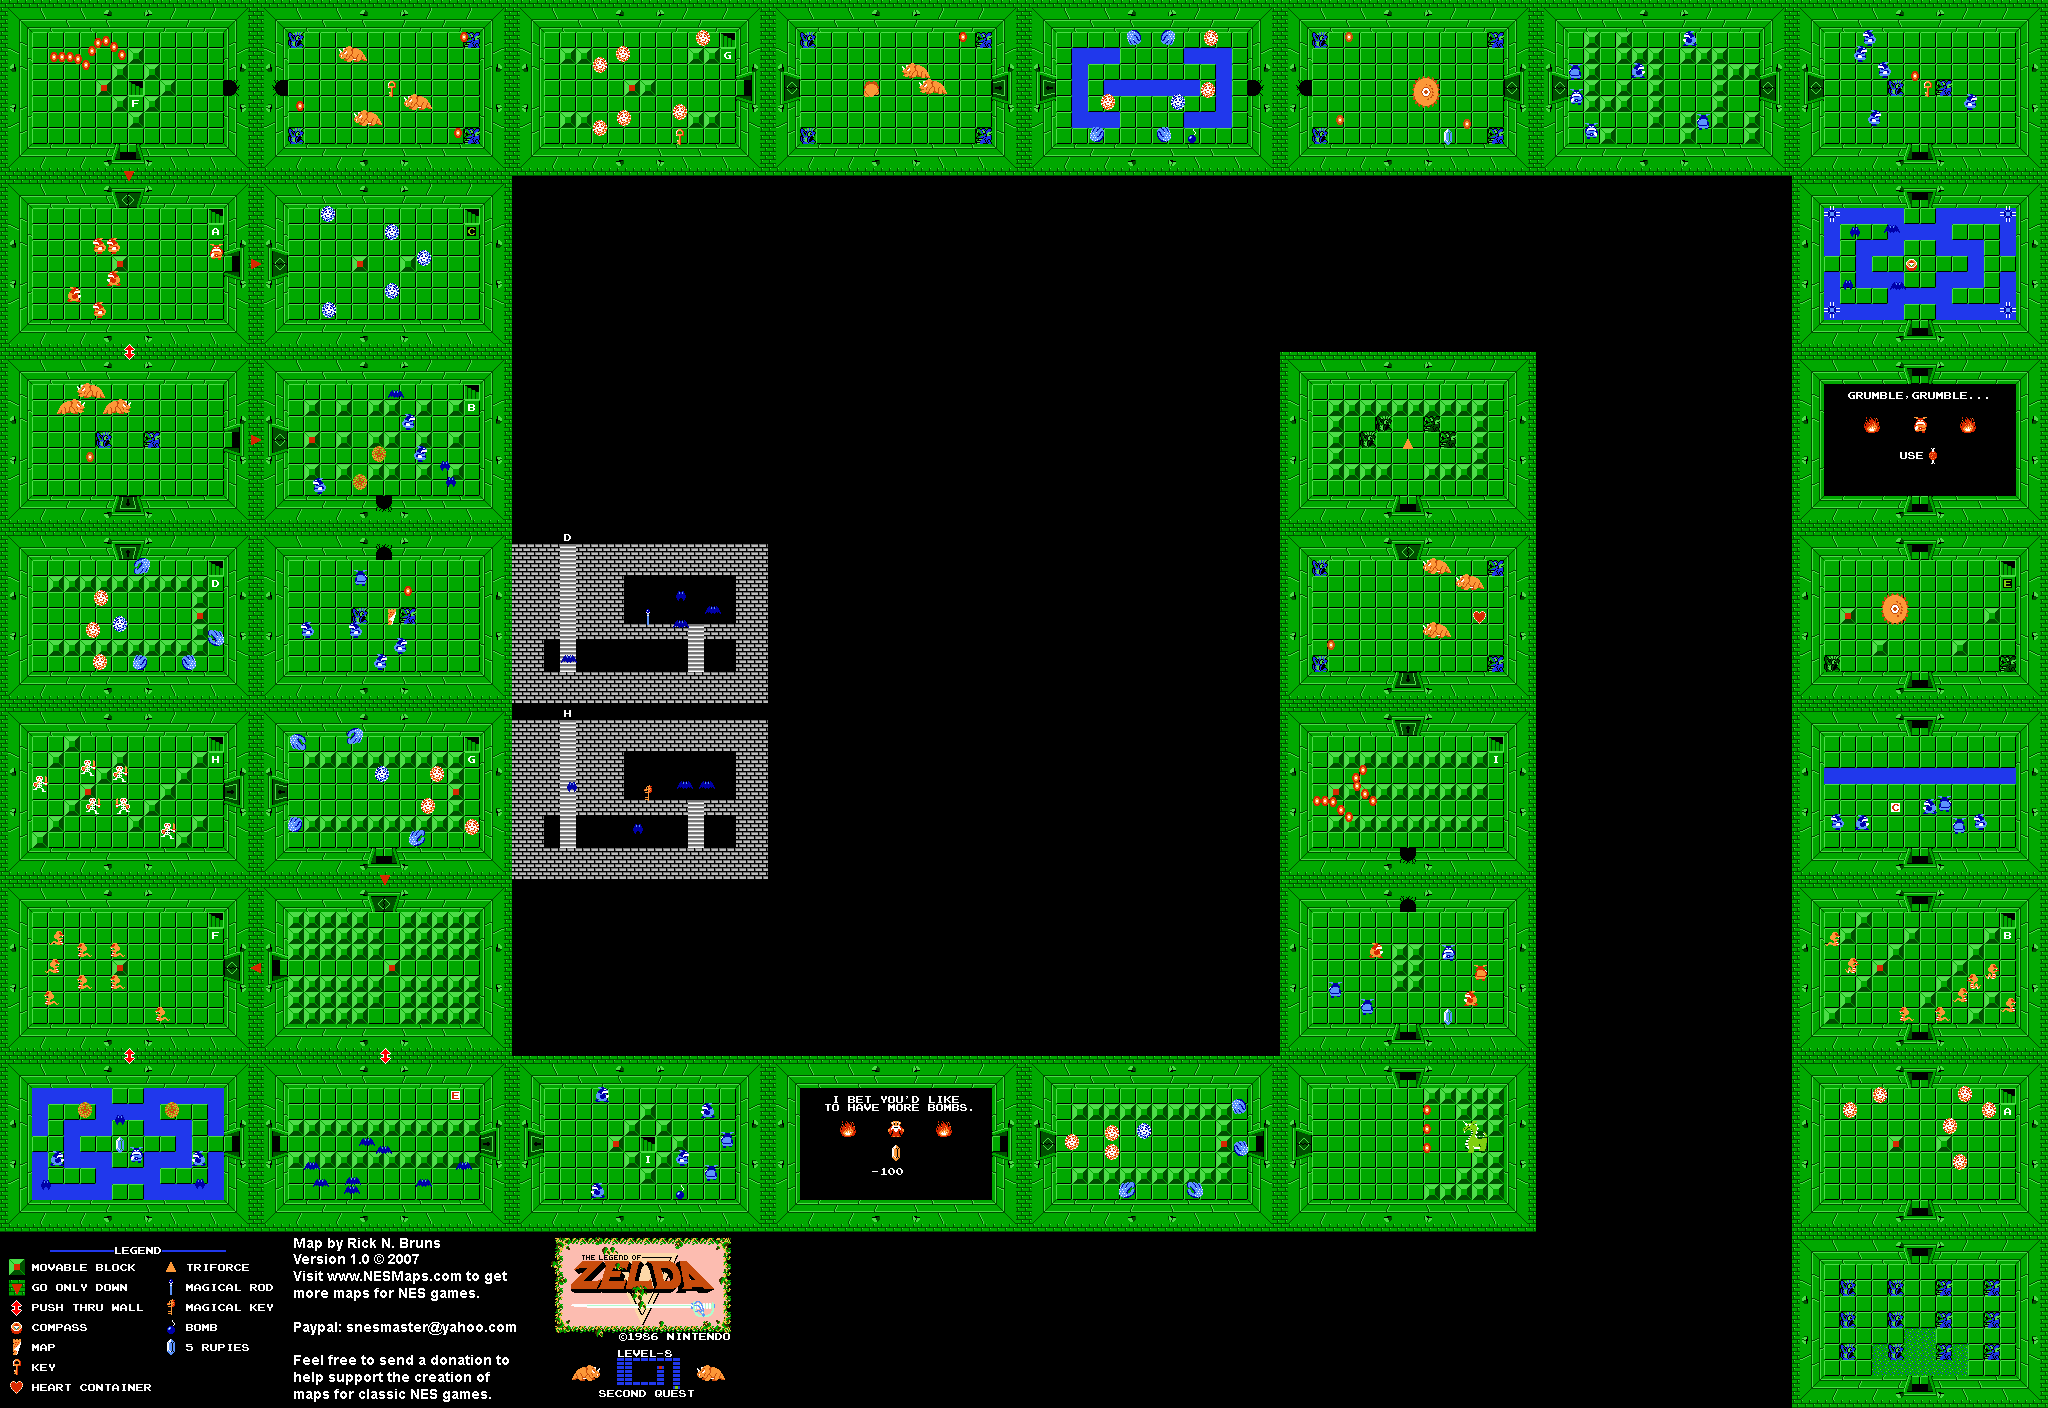 The Legend of Zelda - Level 8 Quest 2 Map on dragon quest nes map, super metroid full map, void a everquest map, star wars nes map, 360 the simpsons map, ninja turtles nes map, link nes map, rygar nes map, batman nes map, hyrule total war world map, castlevania nes map, metal gear nes map, mario nes map, metroid nes map, dragon quest 6 map, chrono trigger nes map, adventure of link map,